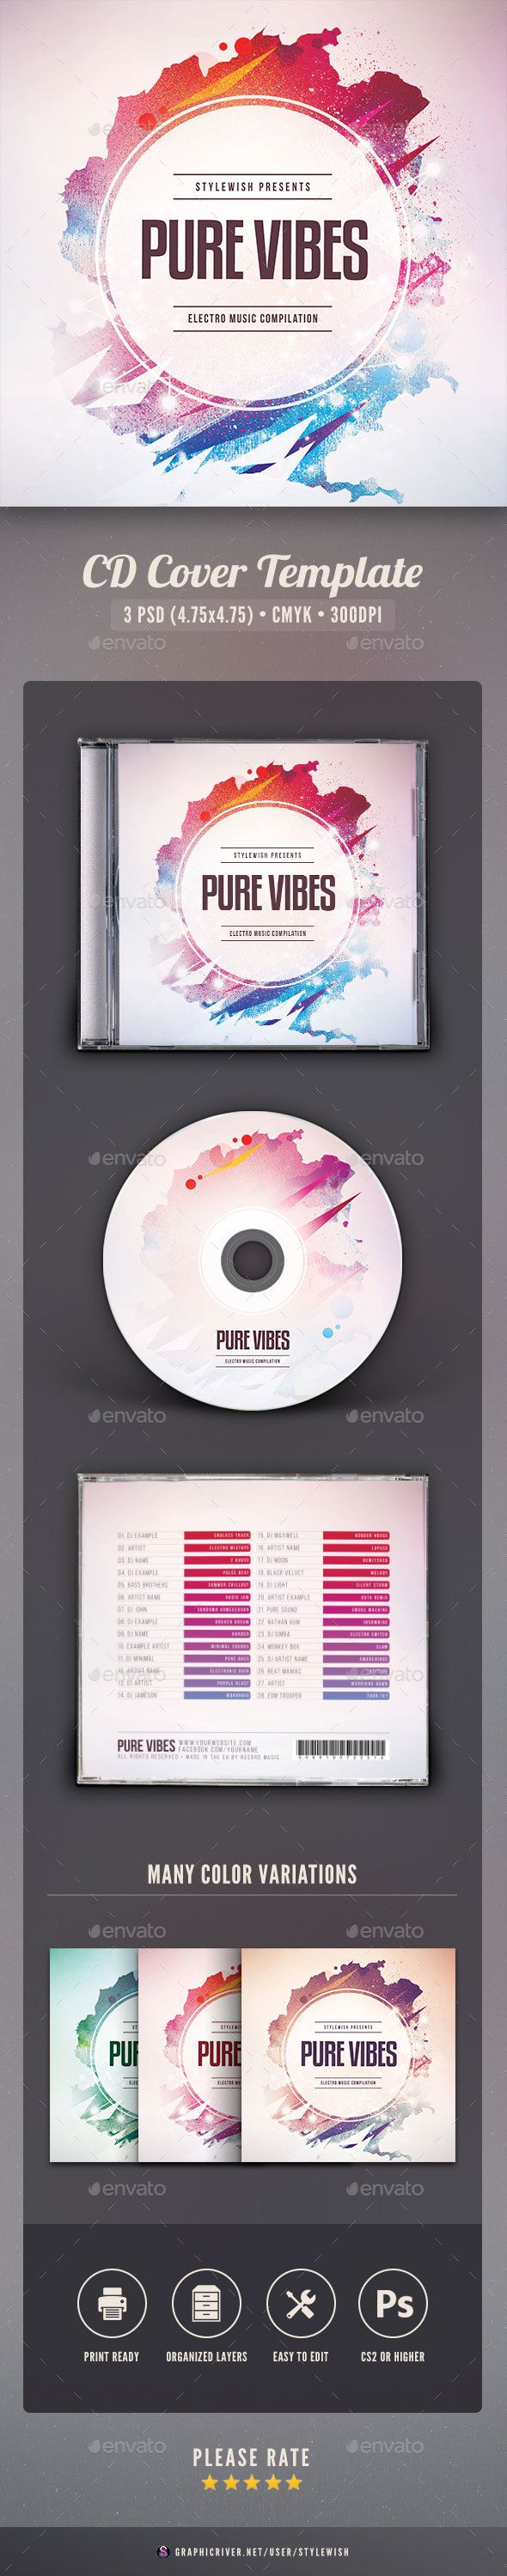 Pure Vibes CD Cover Artwork Template PSD. Download here: http://graphicriver.net/item/pure-vibes-cd-cover-artwork/16487199?ref=ksioks